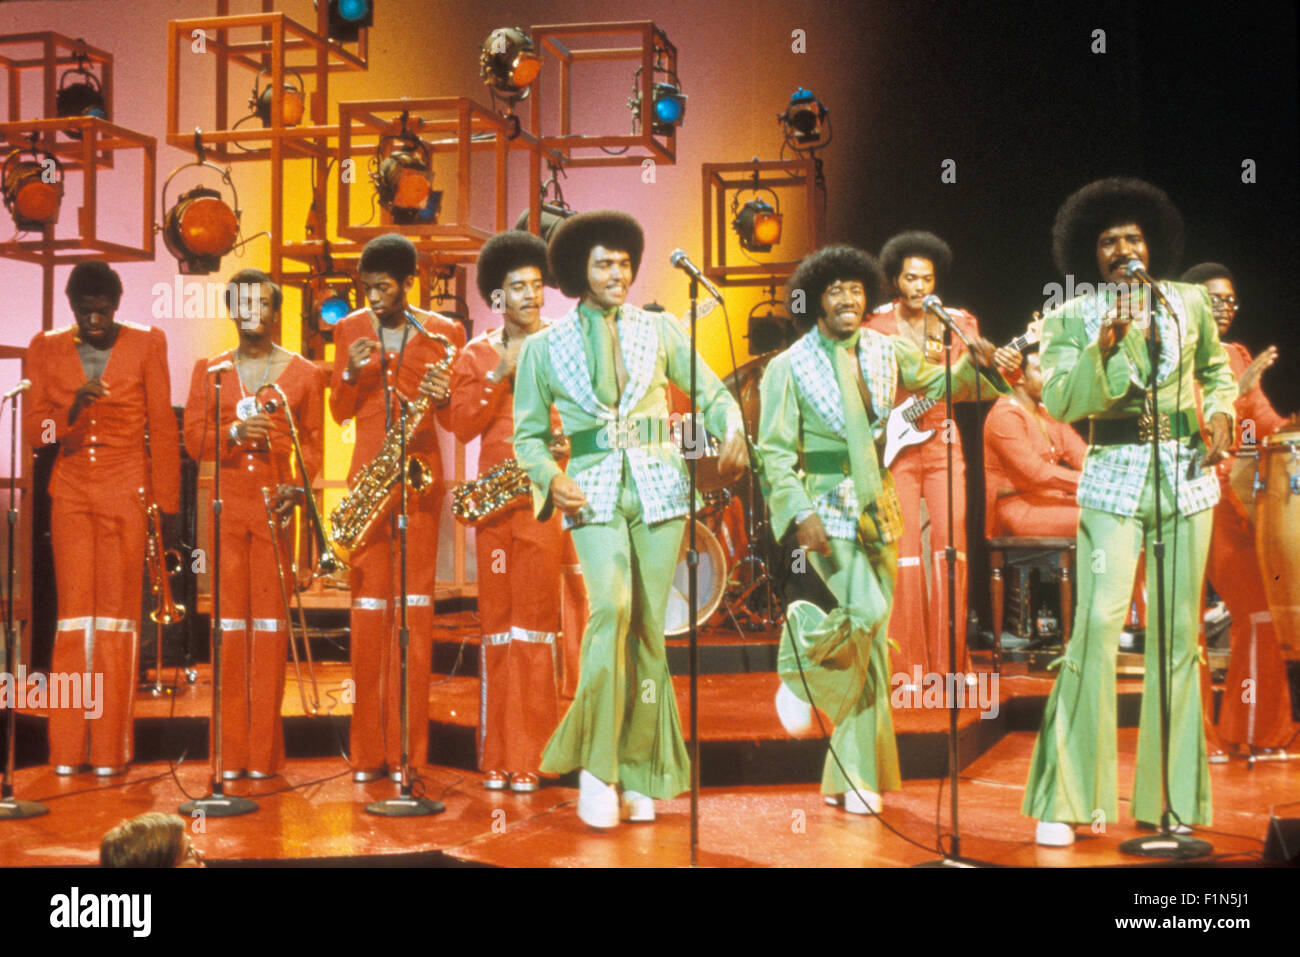 CHI-LITES US group about 1972 - Stock Image